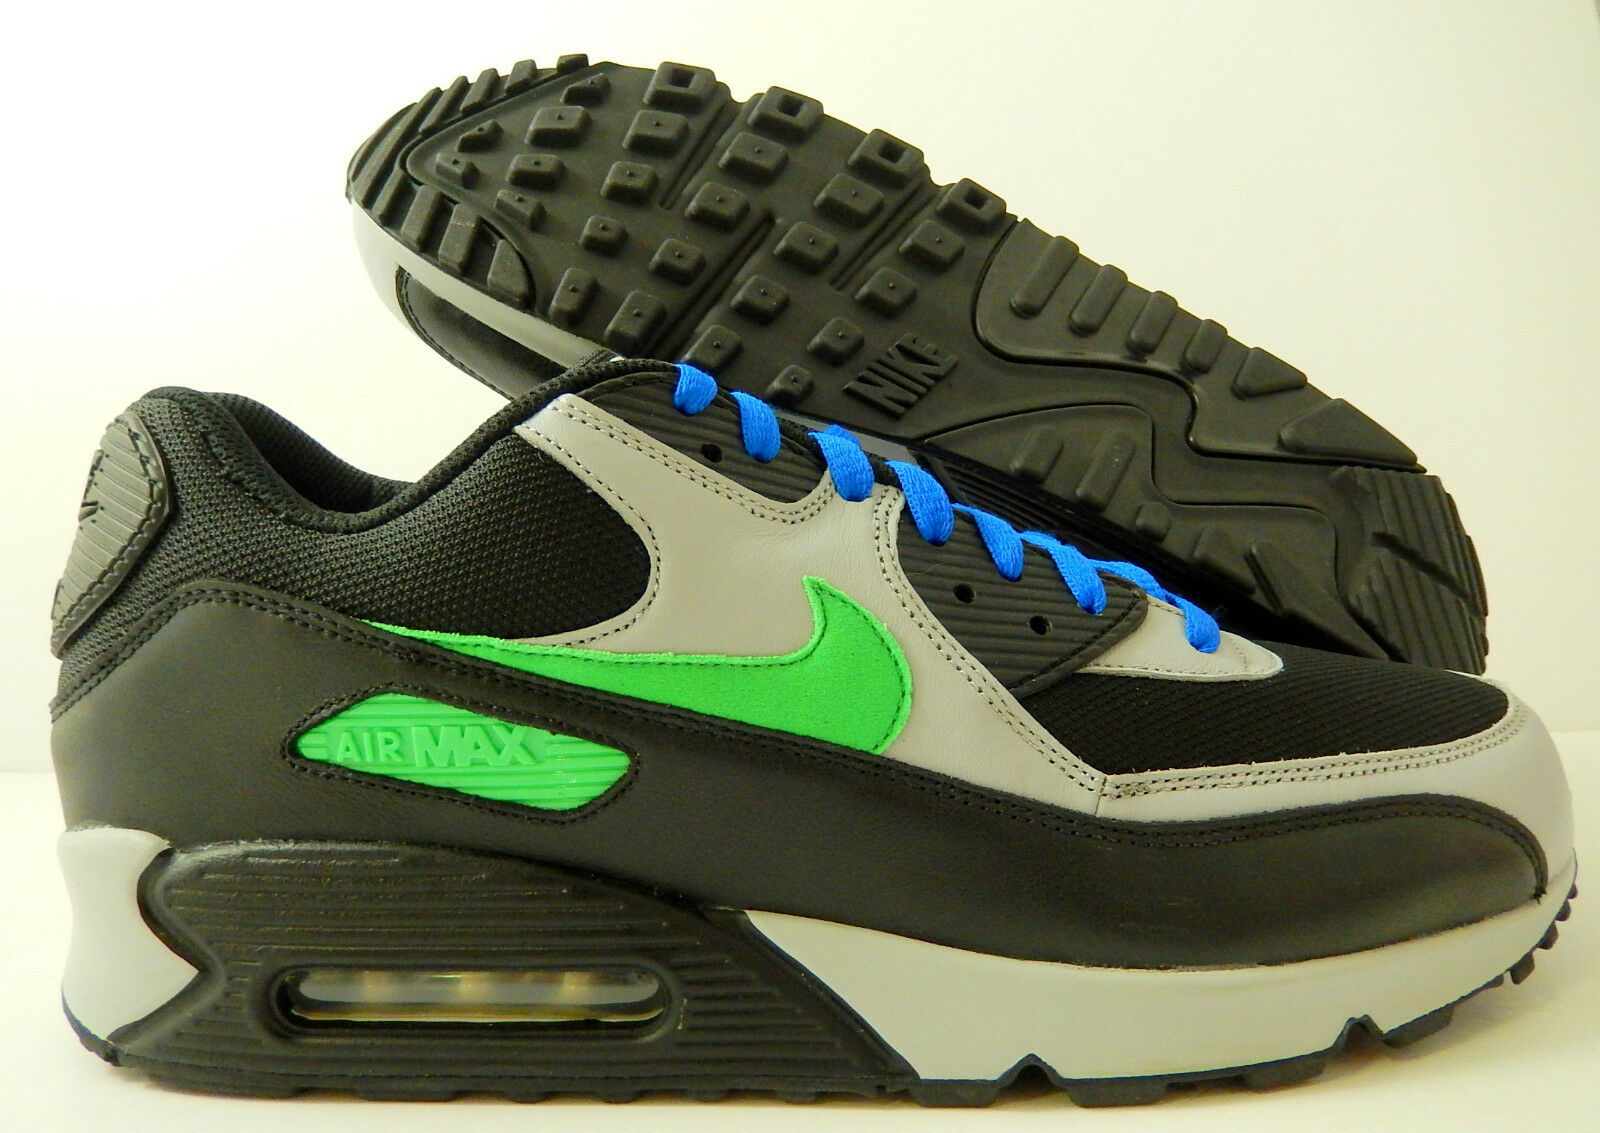 NIKE AIR BLACK-GREY-GREEN-BLUE MAX 90 iD BLACK-GREY-GREEN-BLUE AIR SZ 13 [455686-995] 8031fe